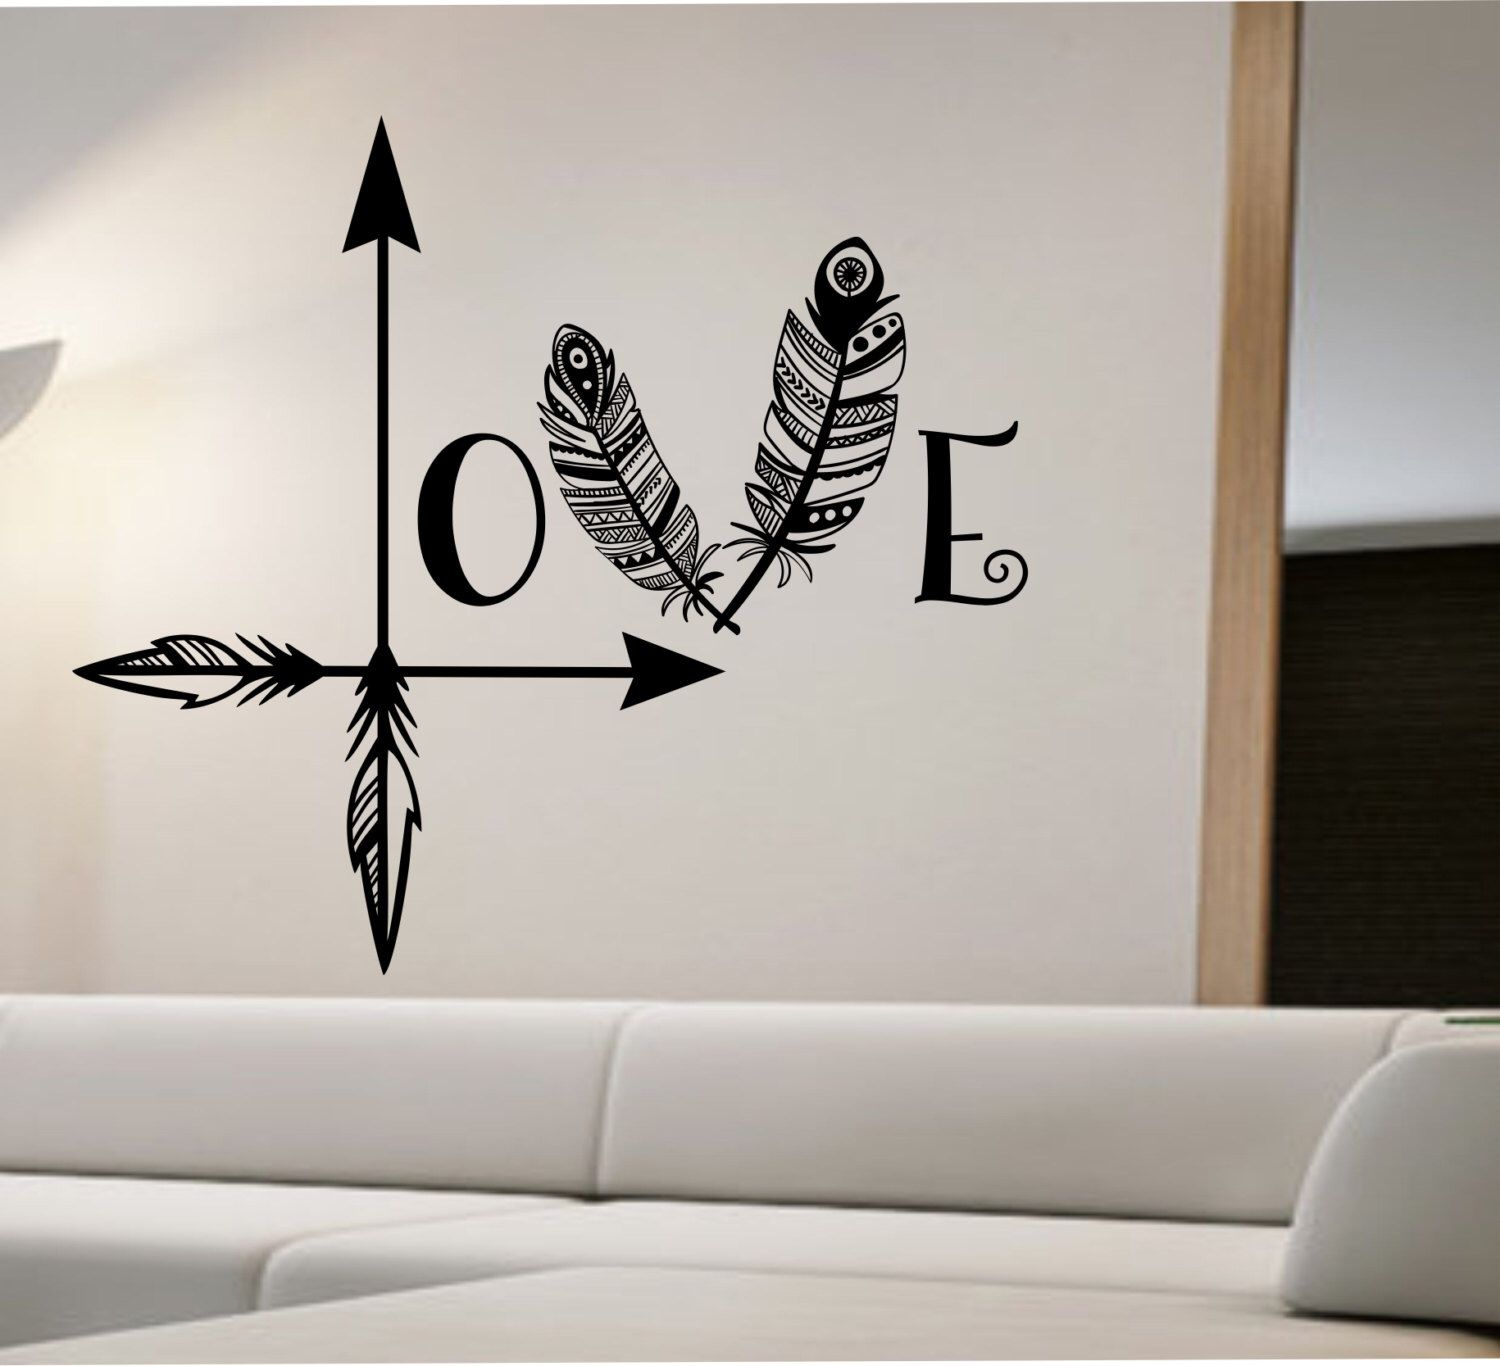 Wall Art Murals Vinyl Decals Stickers : Arrow feather love wall decal namaste vinyl sticker art